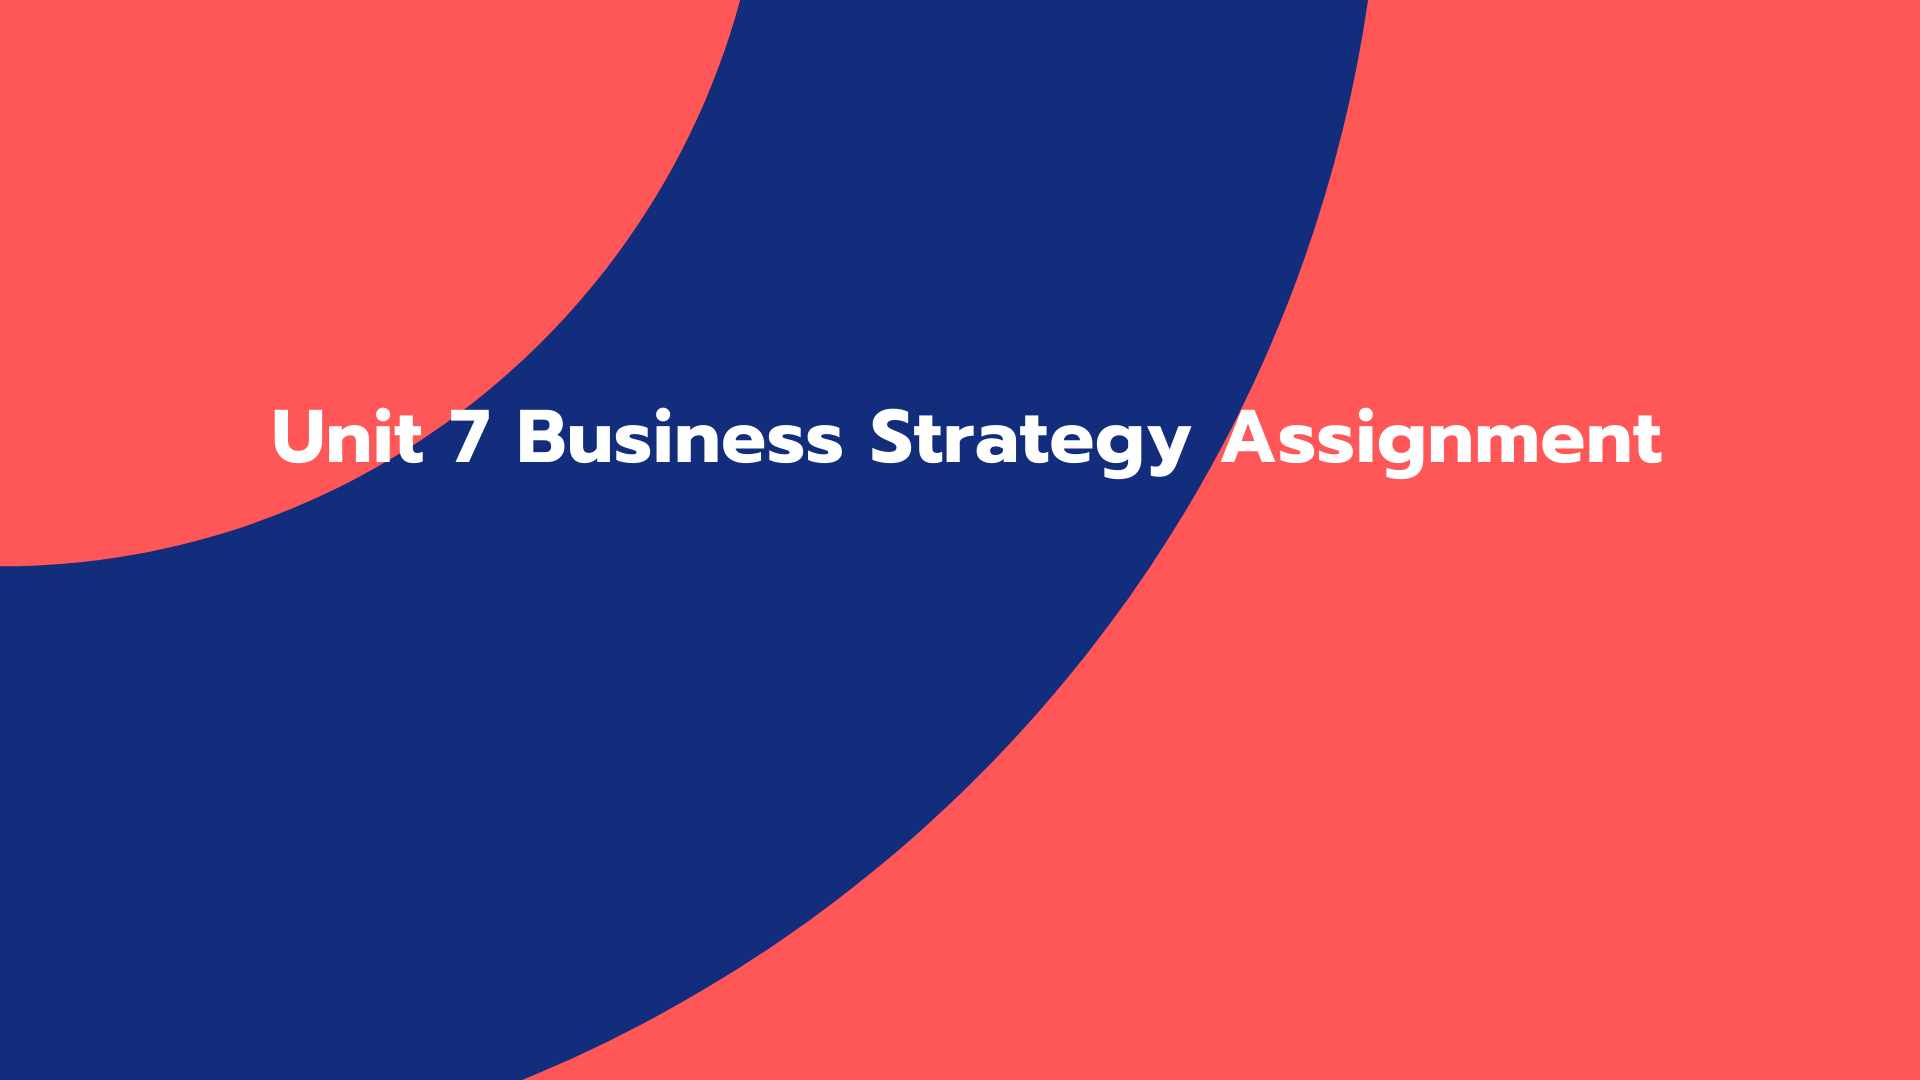 Unit 7 Business Strategy Assignment